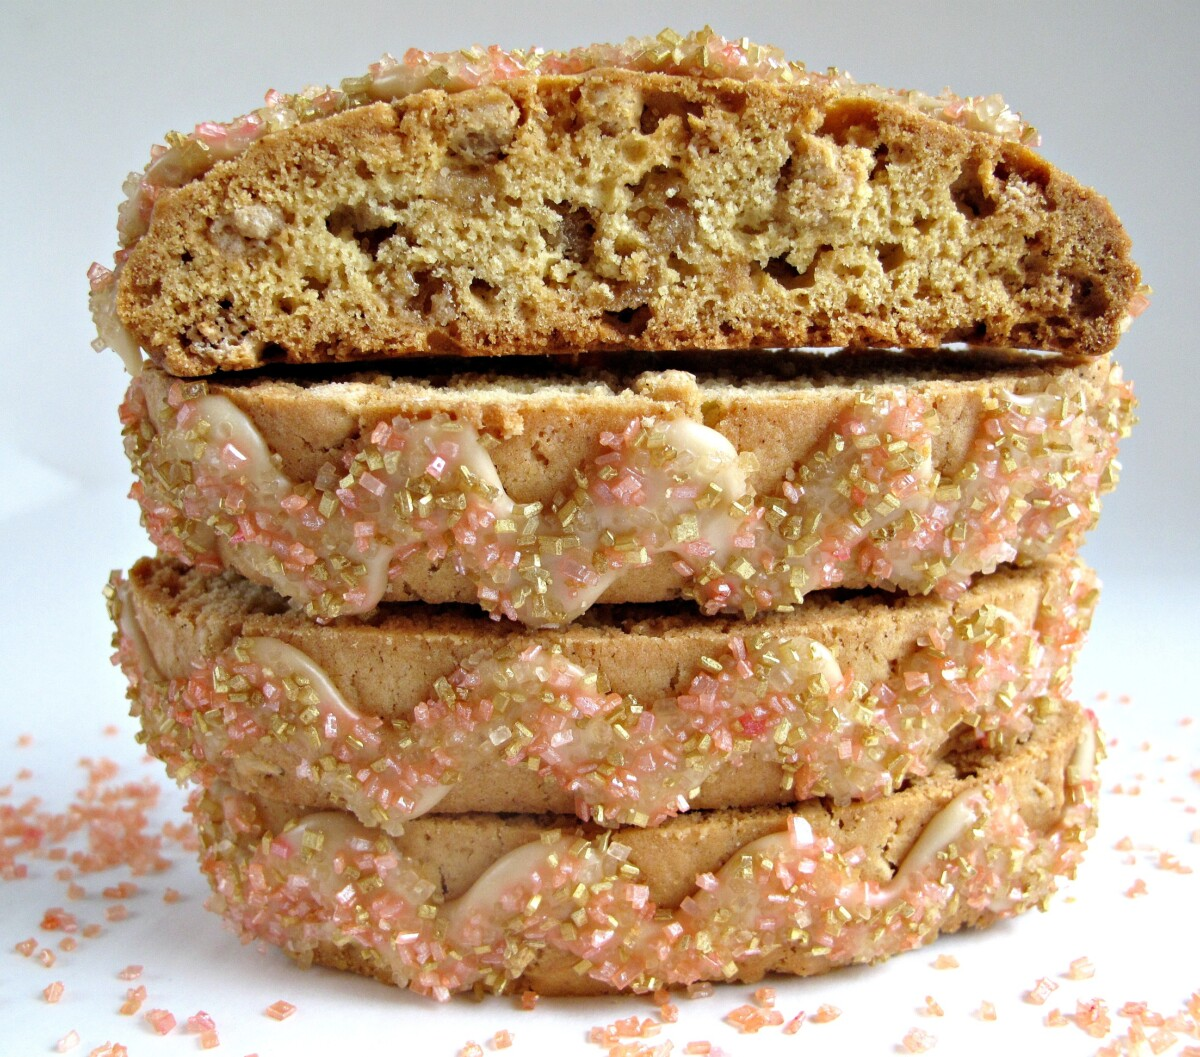 Stack of cookies showing the decorative zigzag icing on top of each.